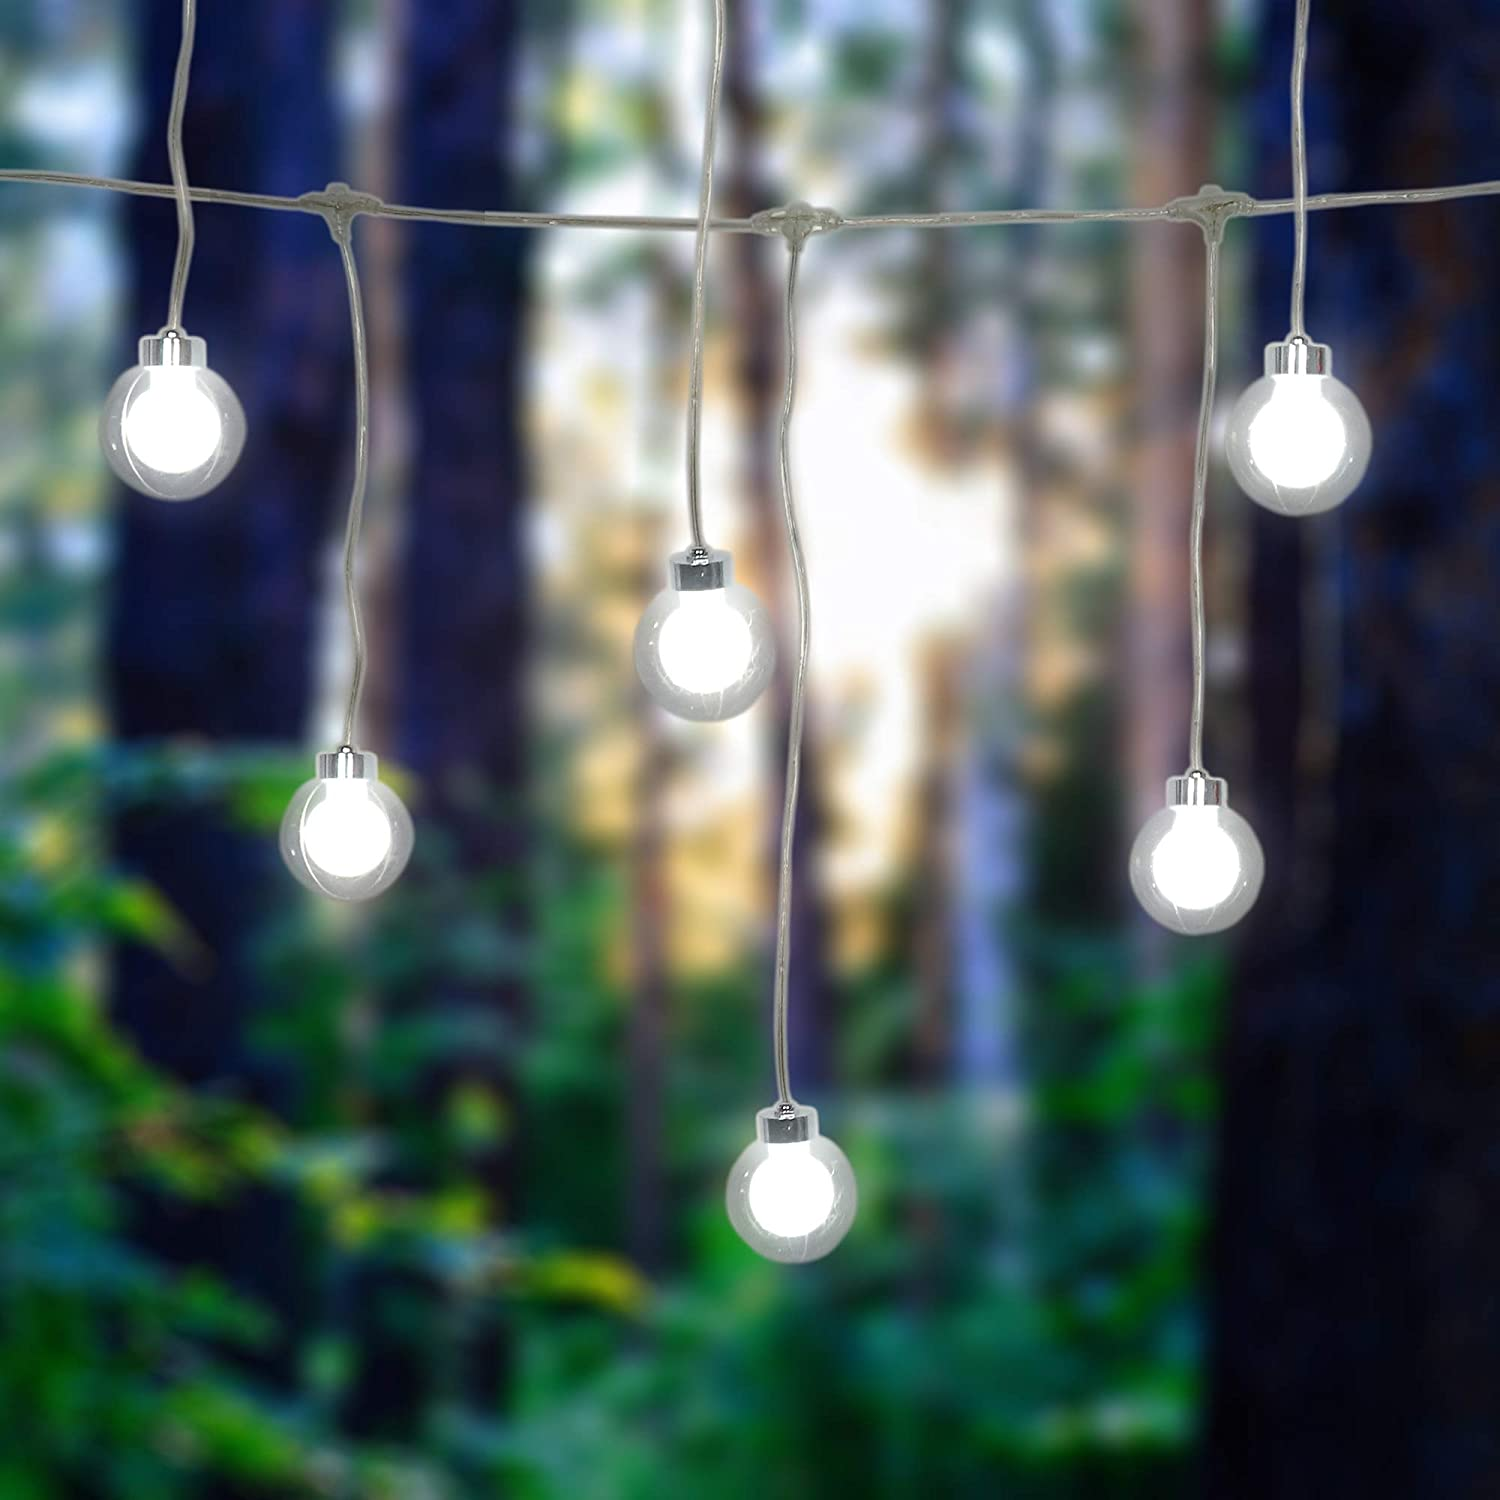 Beewin 16.4Ft G40 Globe String Lights with 8 Double Balls for Indoor/Outdoor Commercial Decor, Outdoor String Lights Perfect for Patio Backyard Porch Garden Pergola Market Cafe BBQ Tents (Cool White)